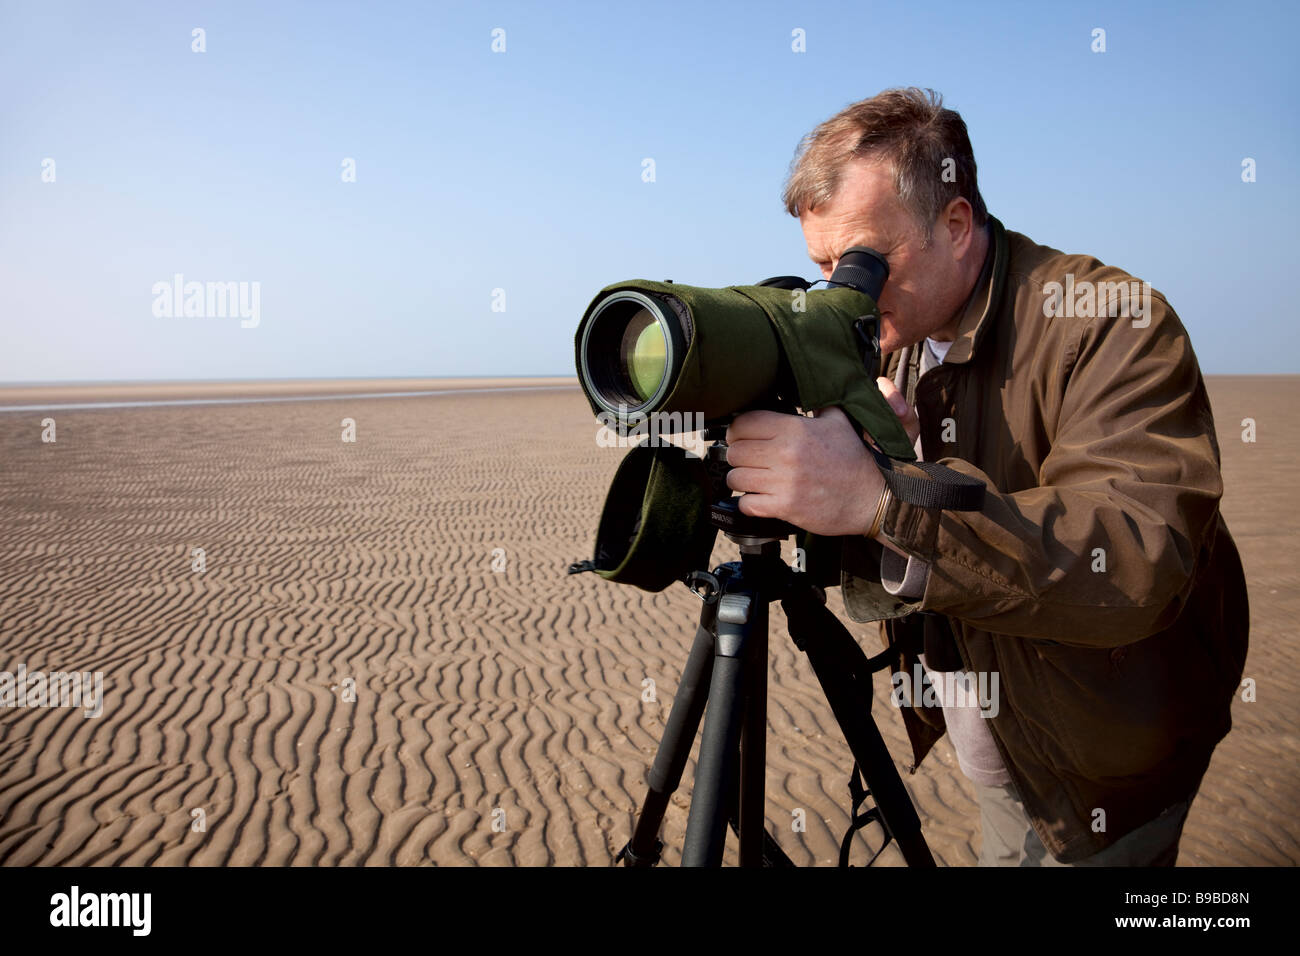 estuary bird monitoring - Stock Image